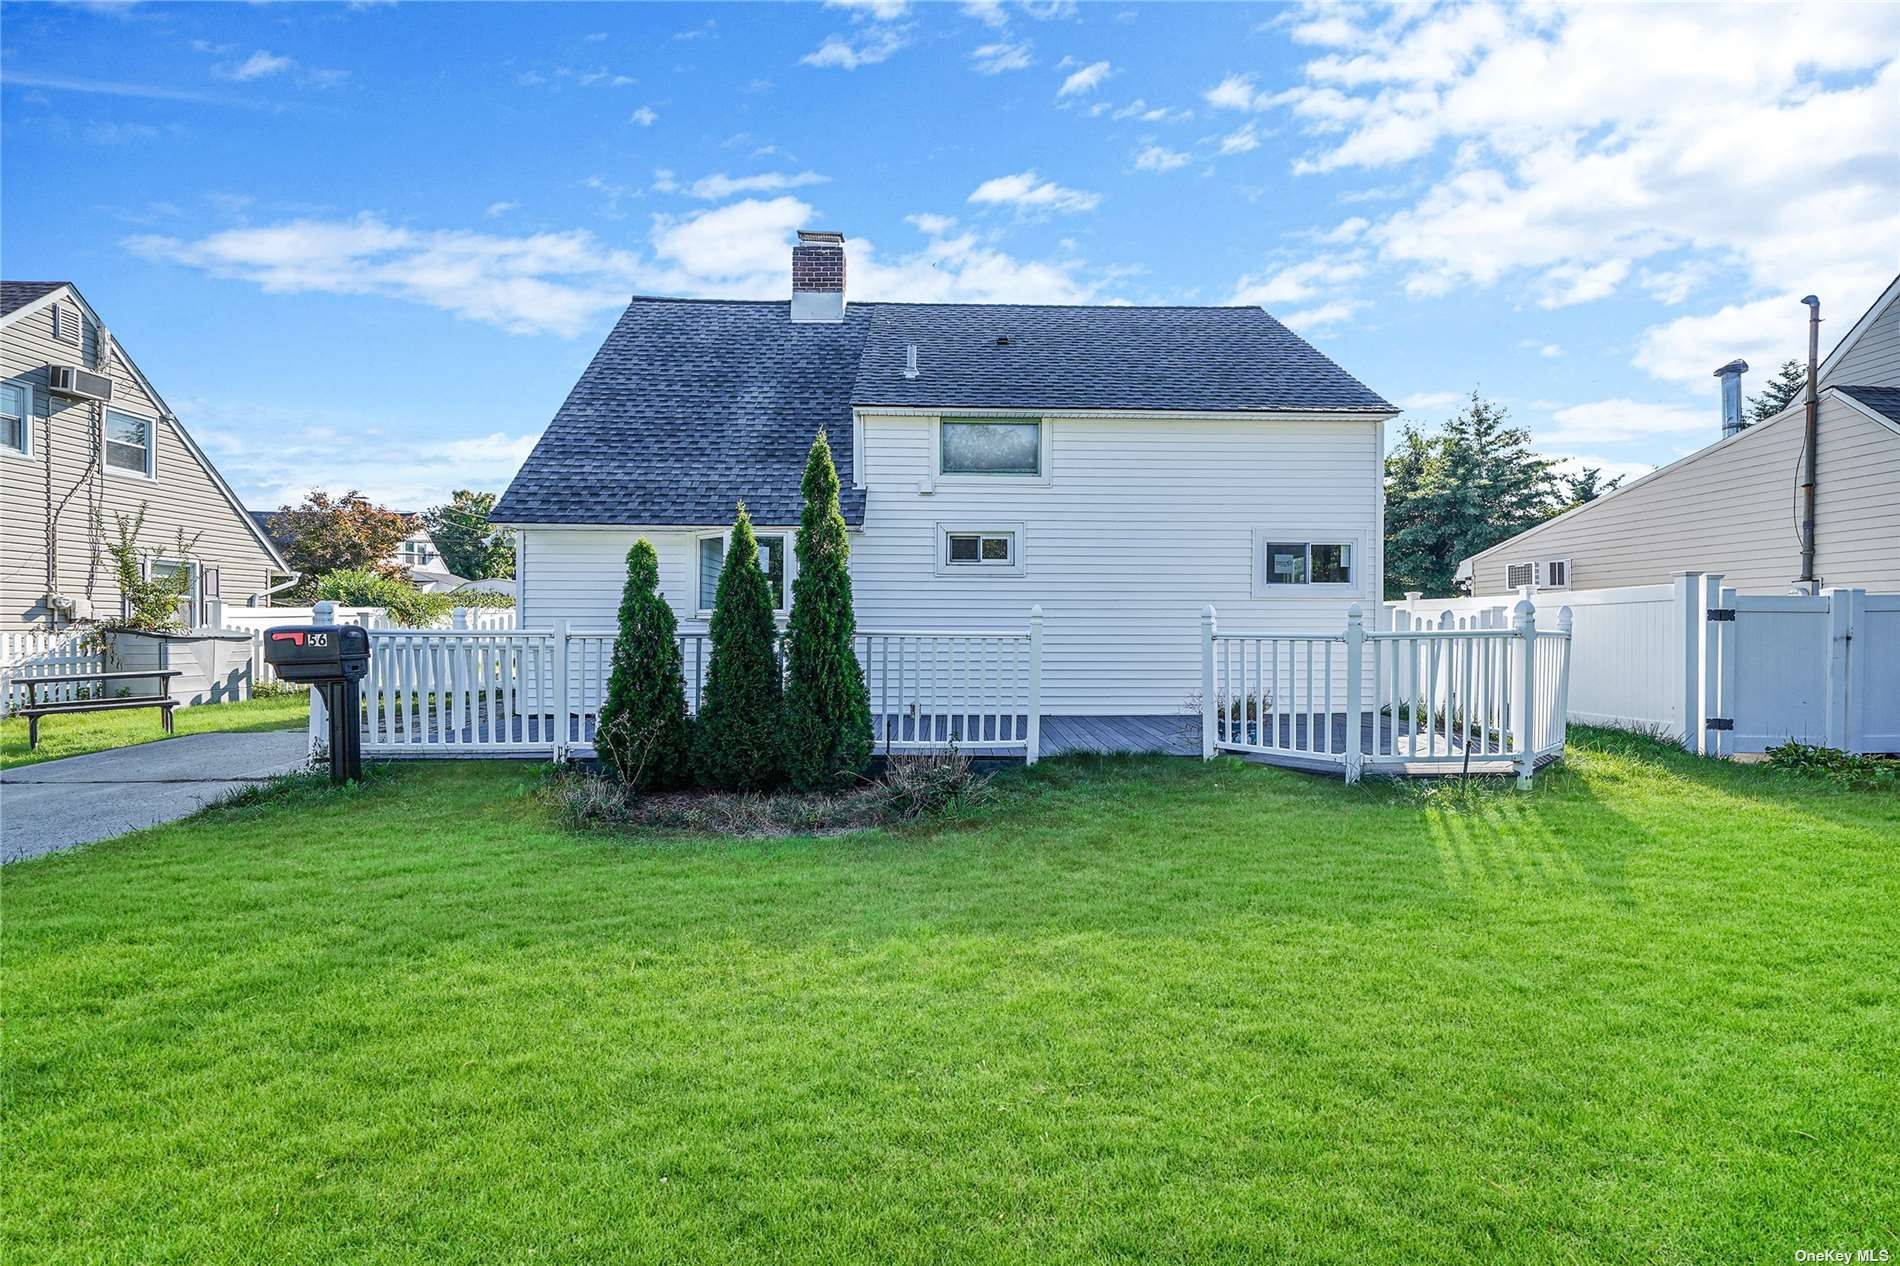 56 Barrister Road, Levittown, NY 11756 - MLS#: 3353390